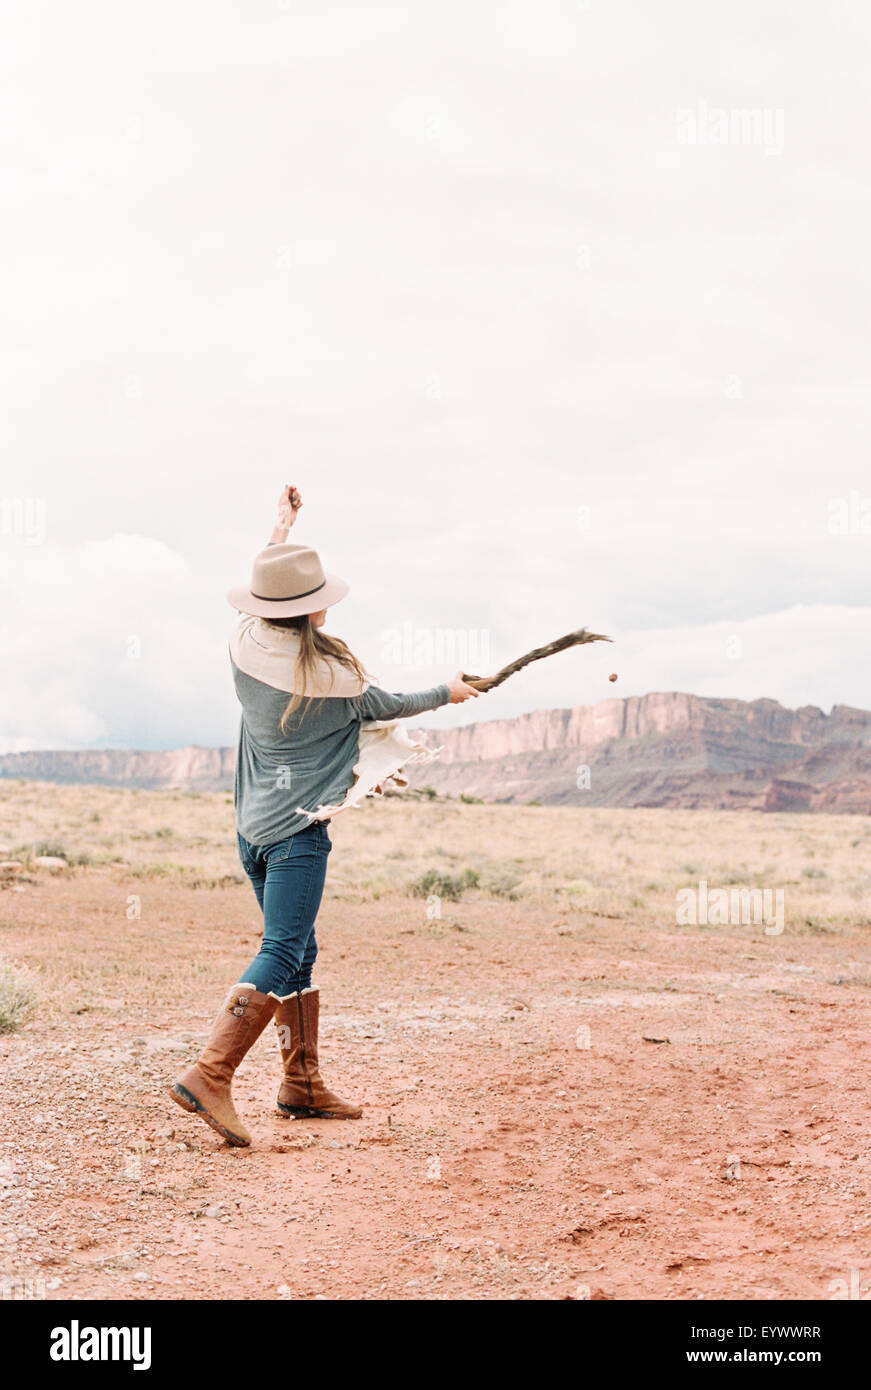 woman hitting a stone with stick - Stock Image